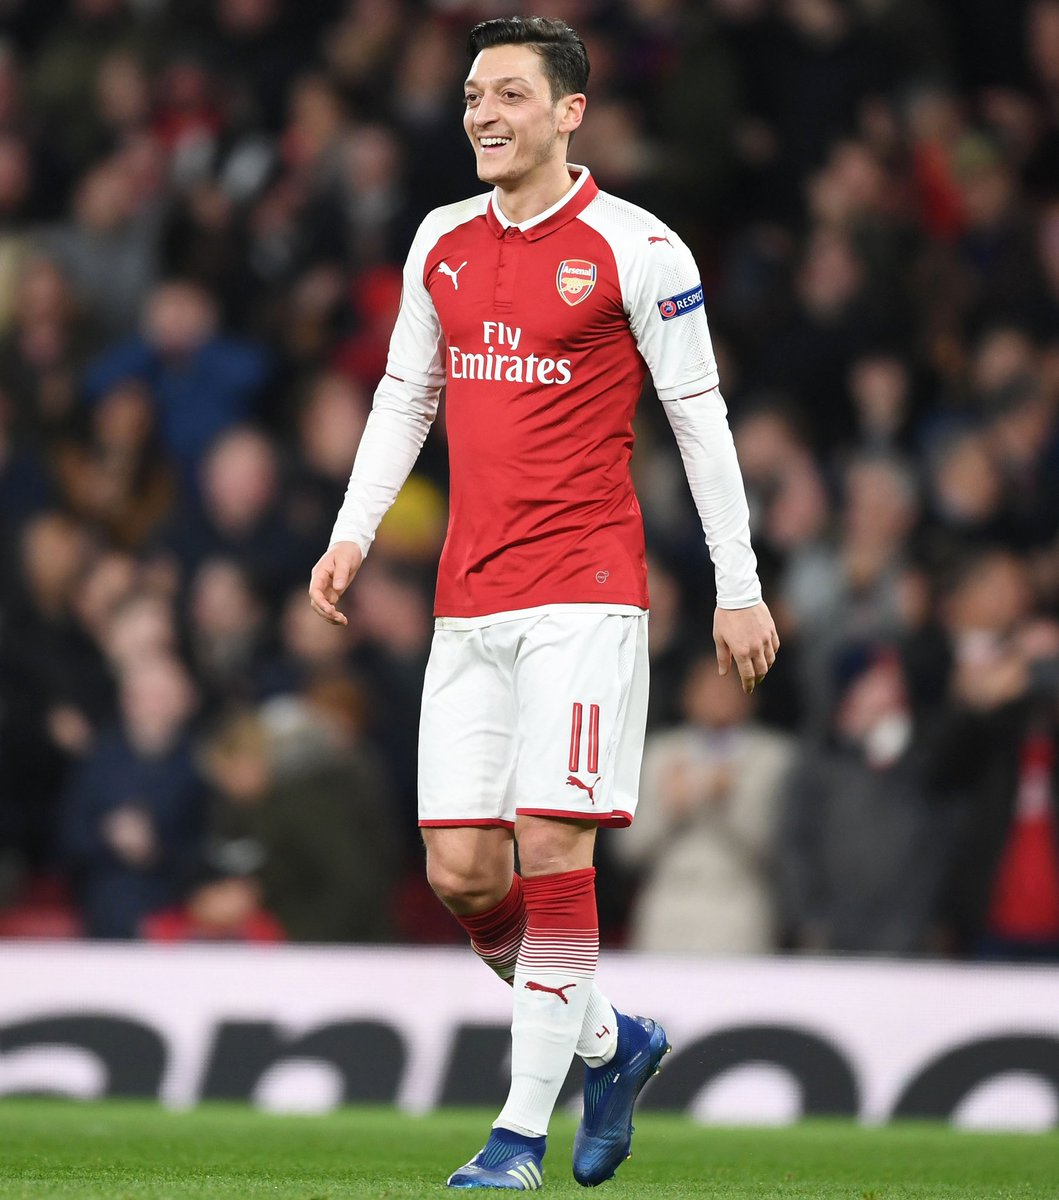 Decent European night in North London 😉👍🏼 Feeling really happy I could help my team with a hattrick of assists ⚽⚽⚽ #YaGunnersYa #UEL @Arsenal